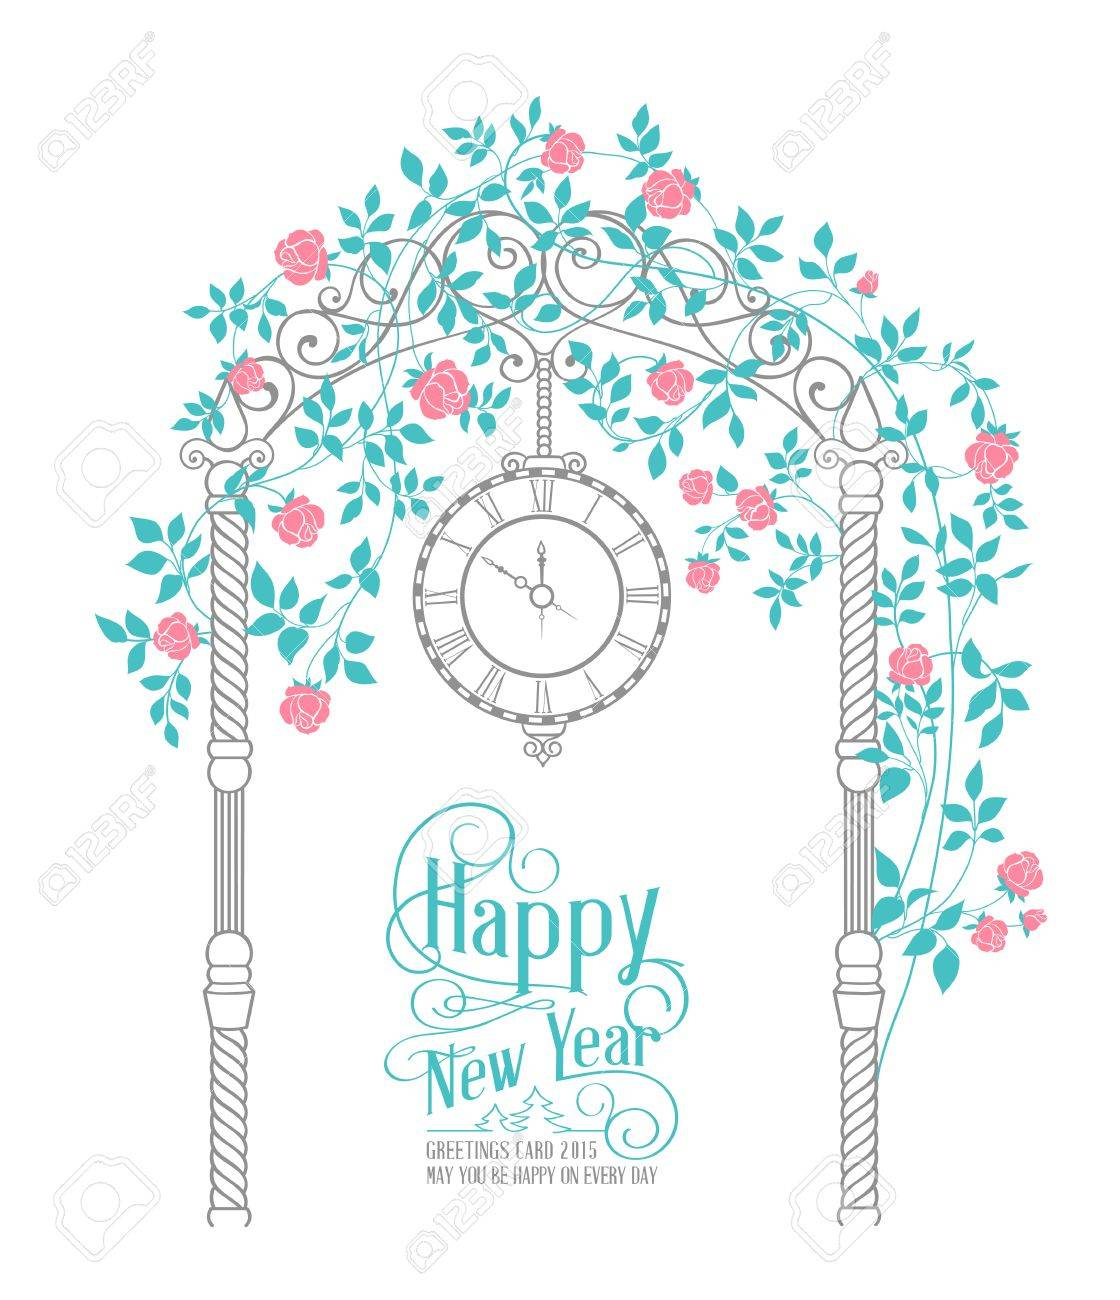 Happy New Year Text Card With Rose Arch And Leaves Isolated Over